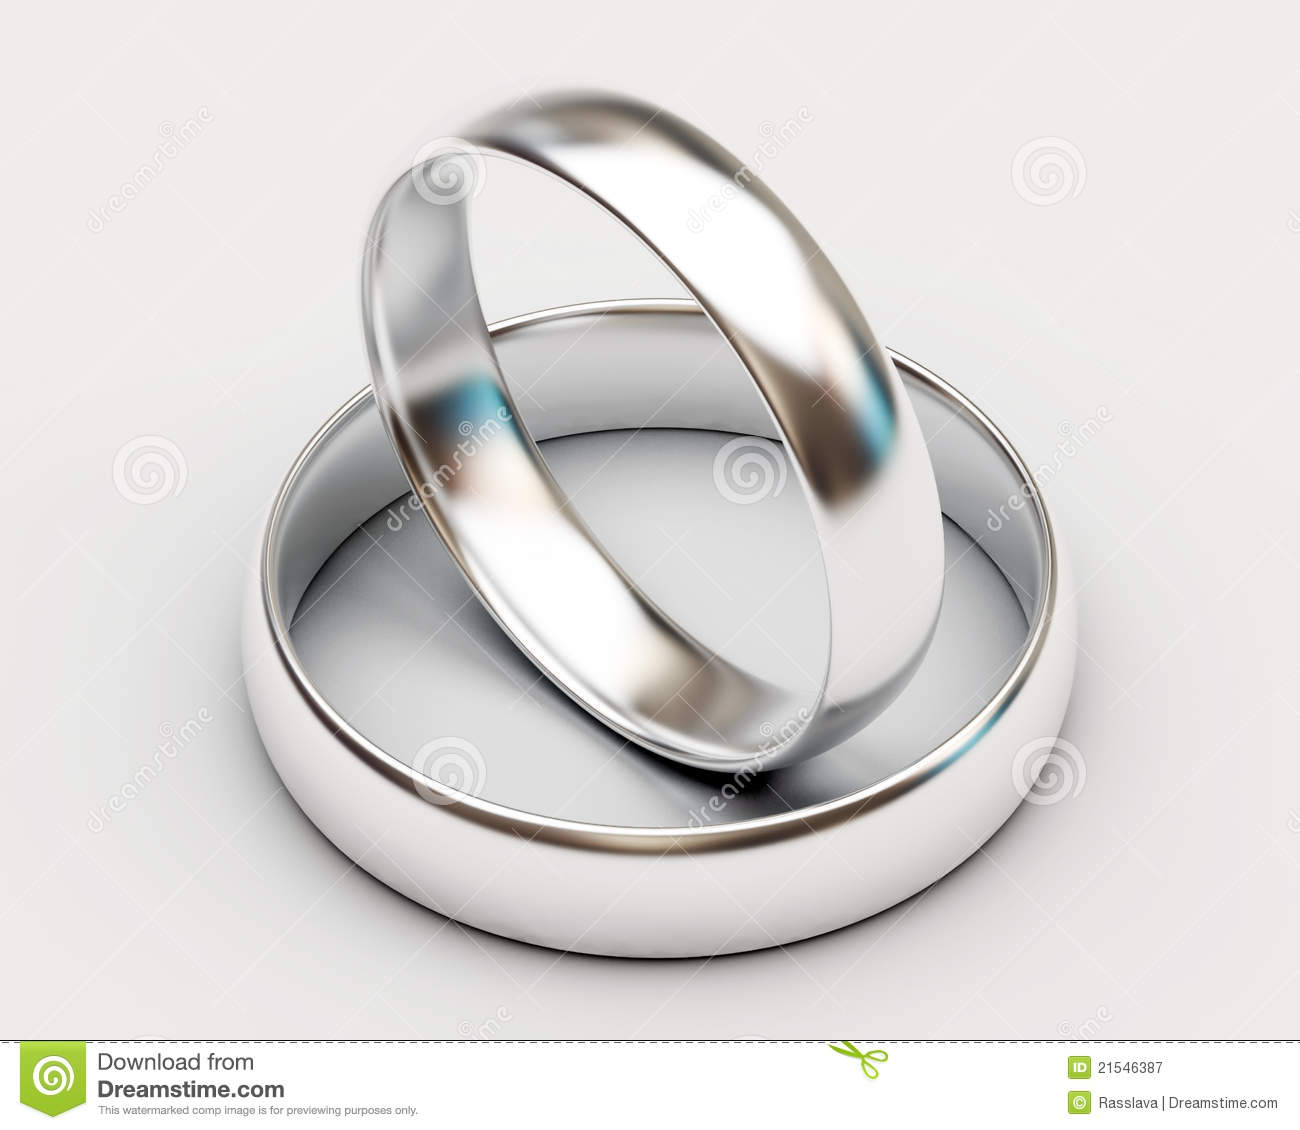 stock images platinum wedding rings white background image platinum wedding bands Platinum wedding rings on white background Royalty Free Stock Photography